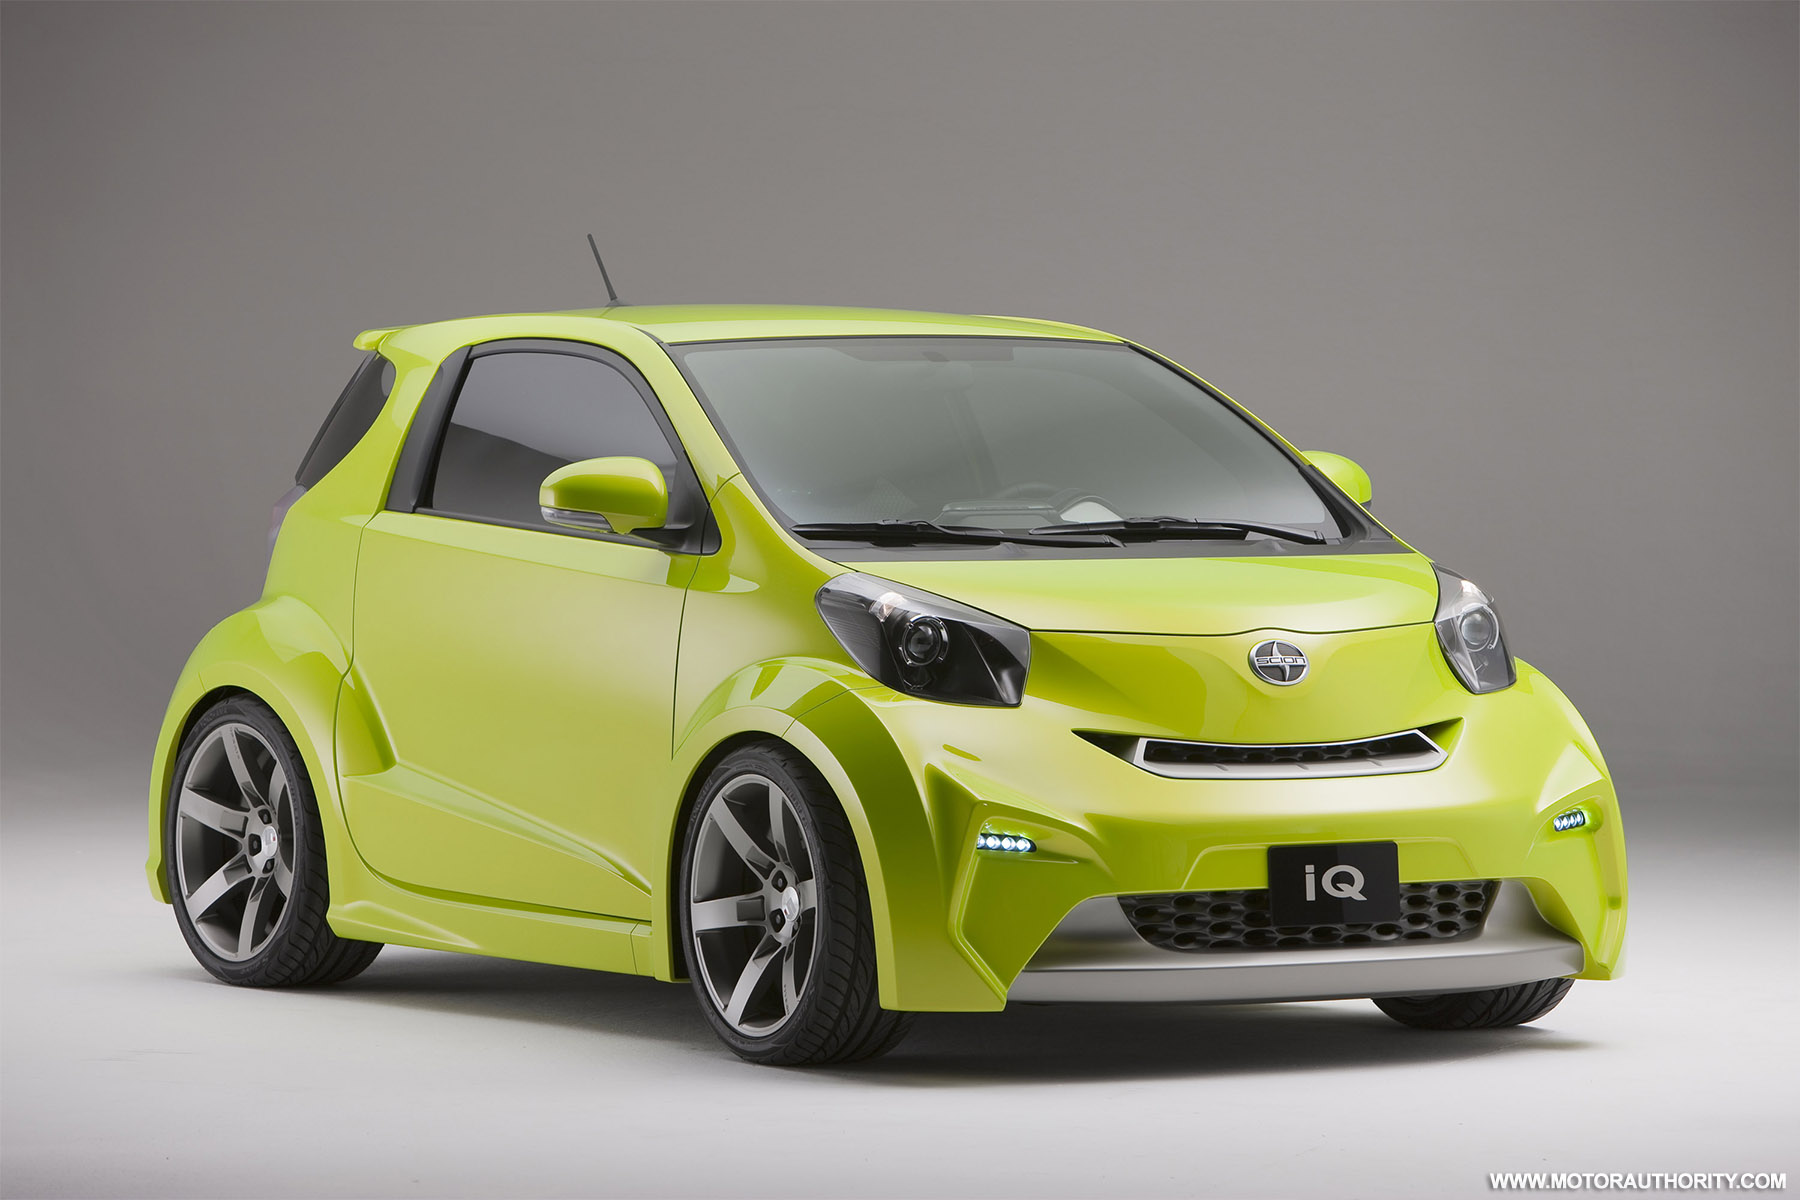 2010 detroit auto show scion iq to debut as a hybrid hatch. Black Bedroom Furniture Sets. Home Design Ideas